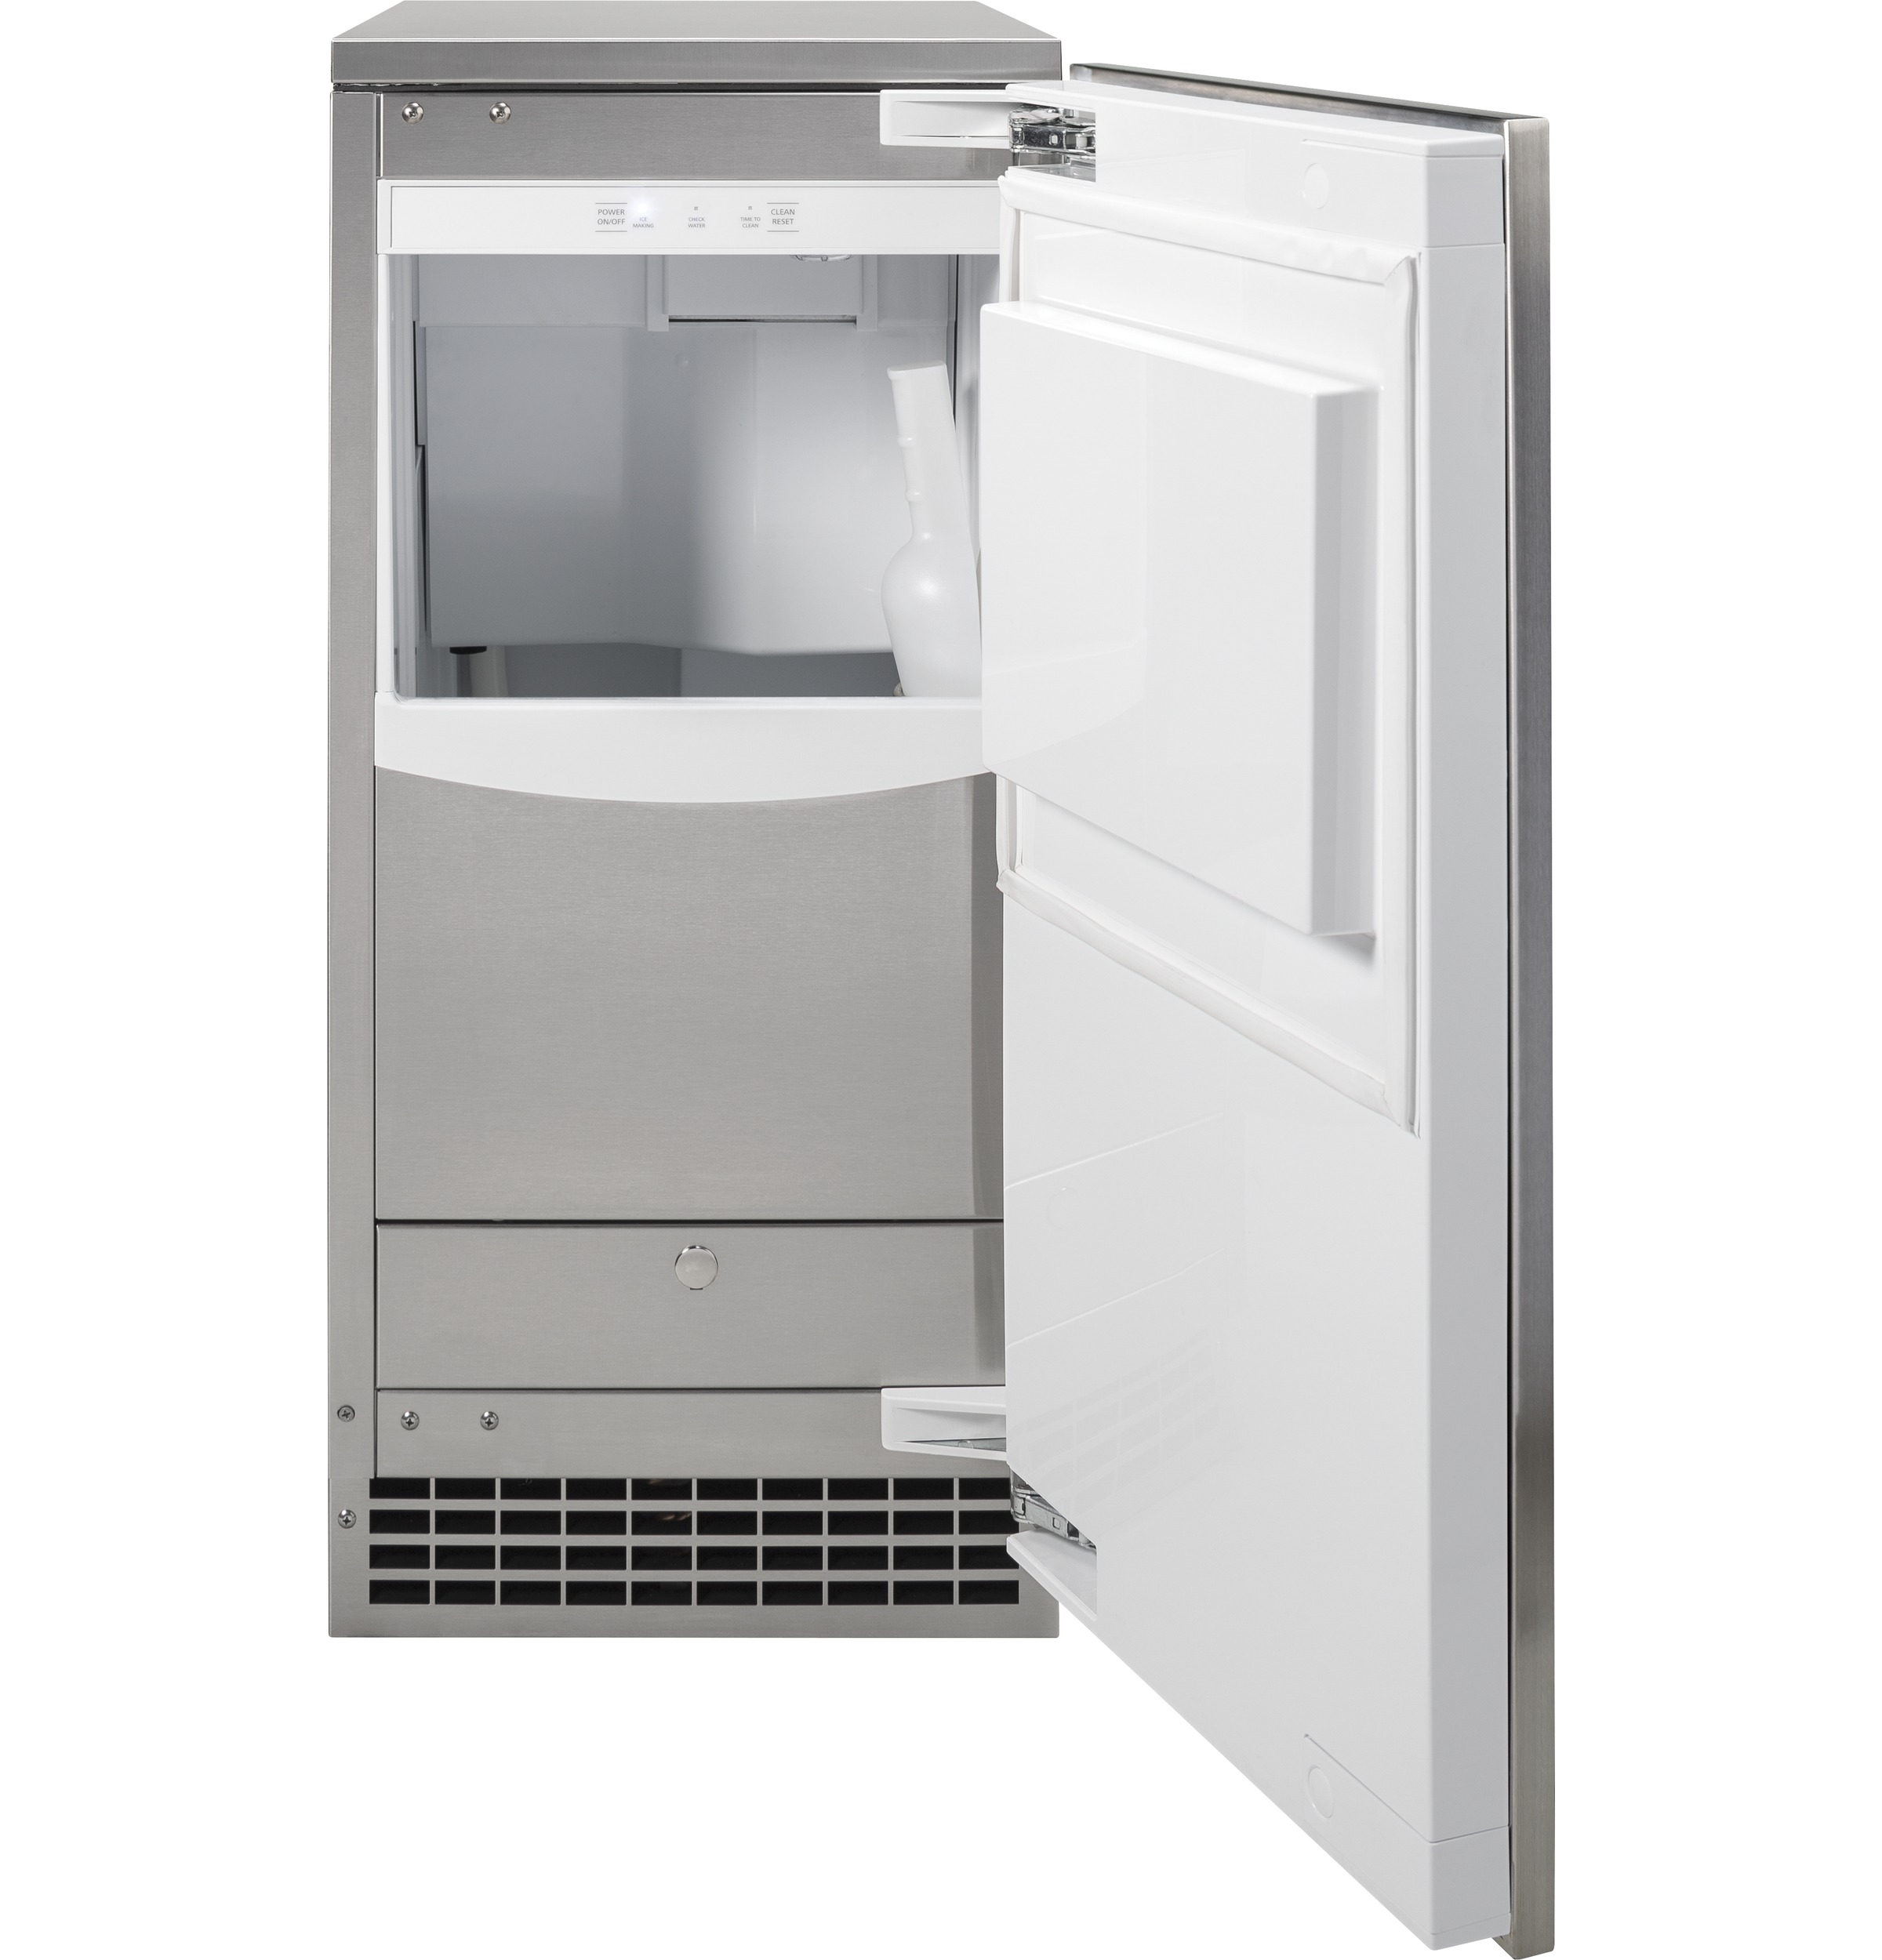 Model: UNC15NJII | GE Profile Ice Maker 15-Inch - Nugget Ice